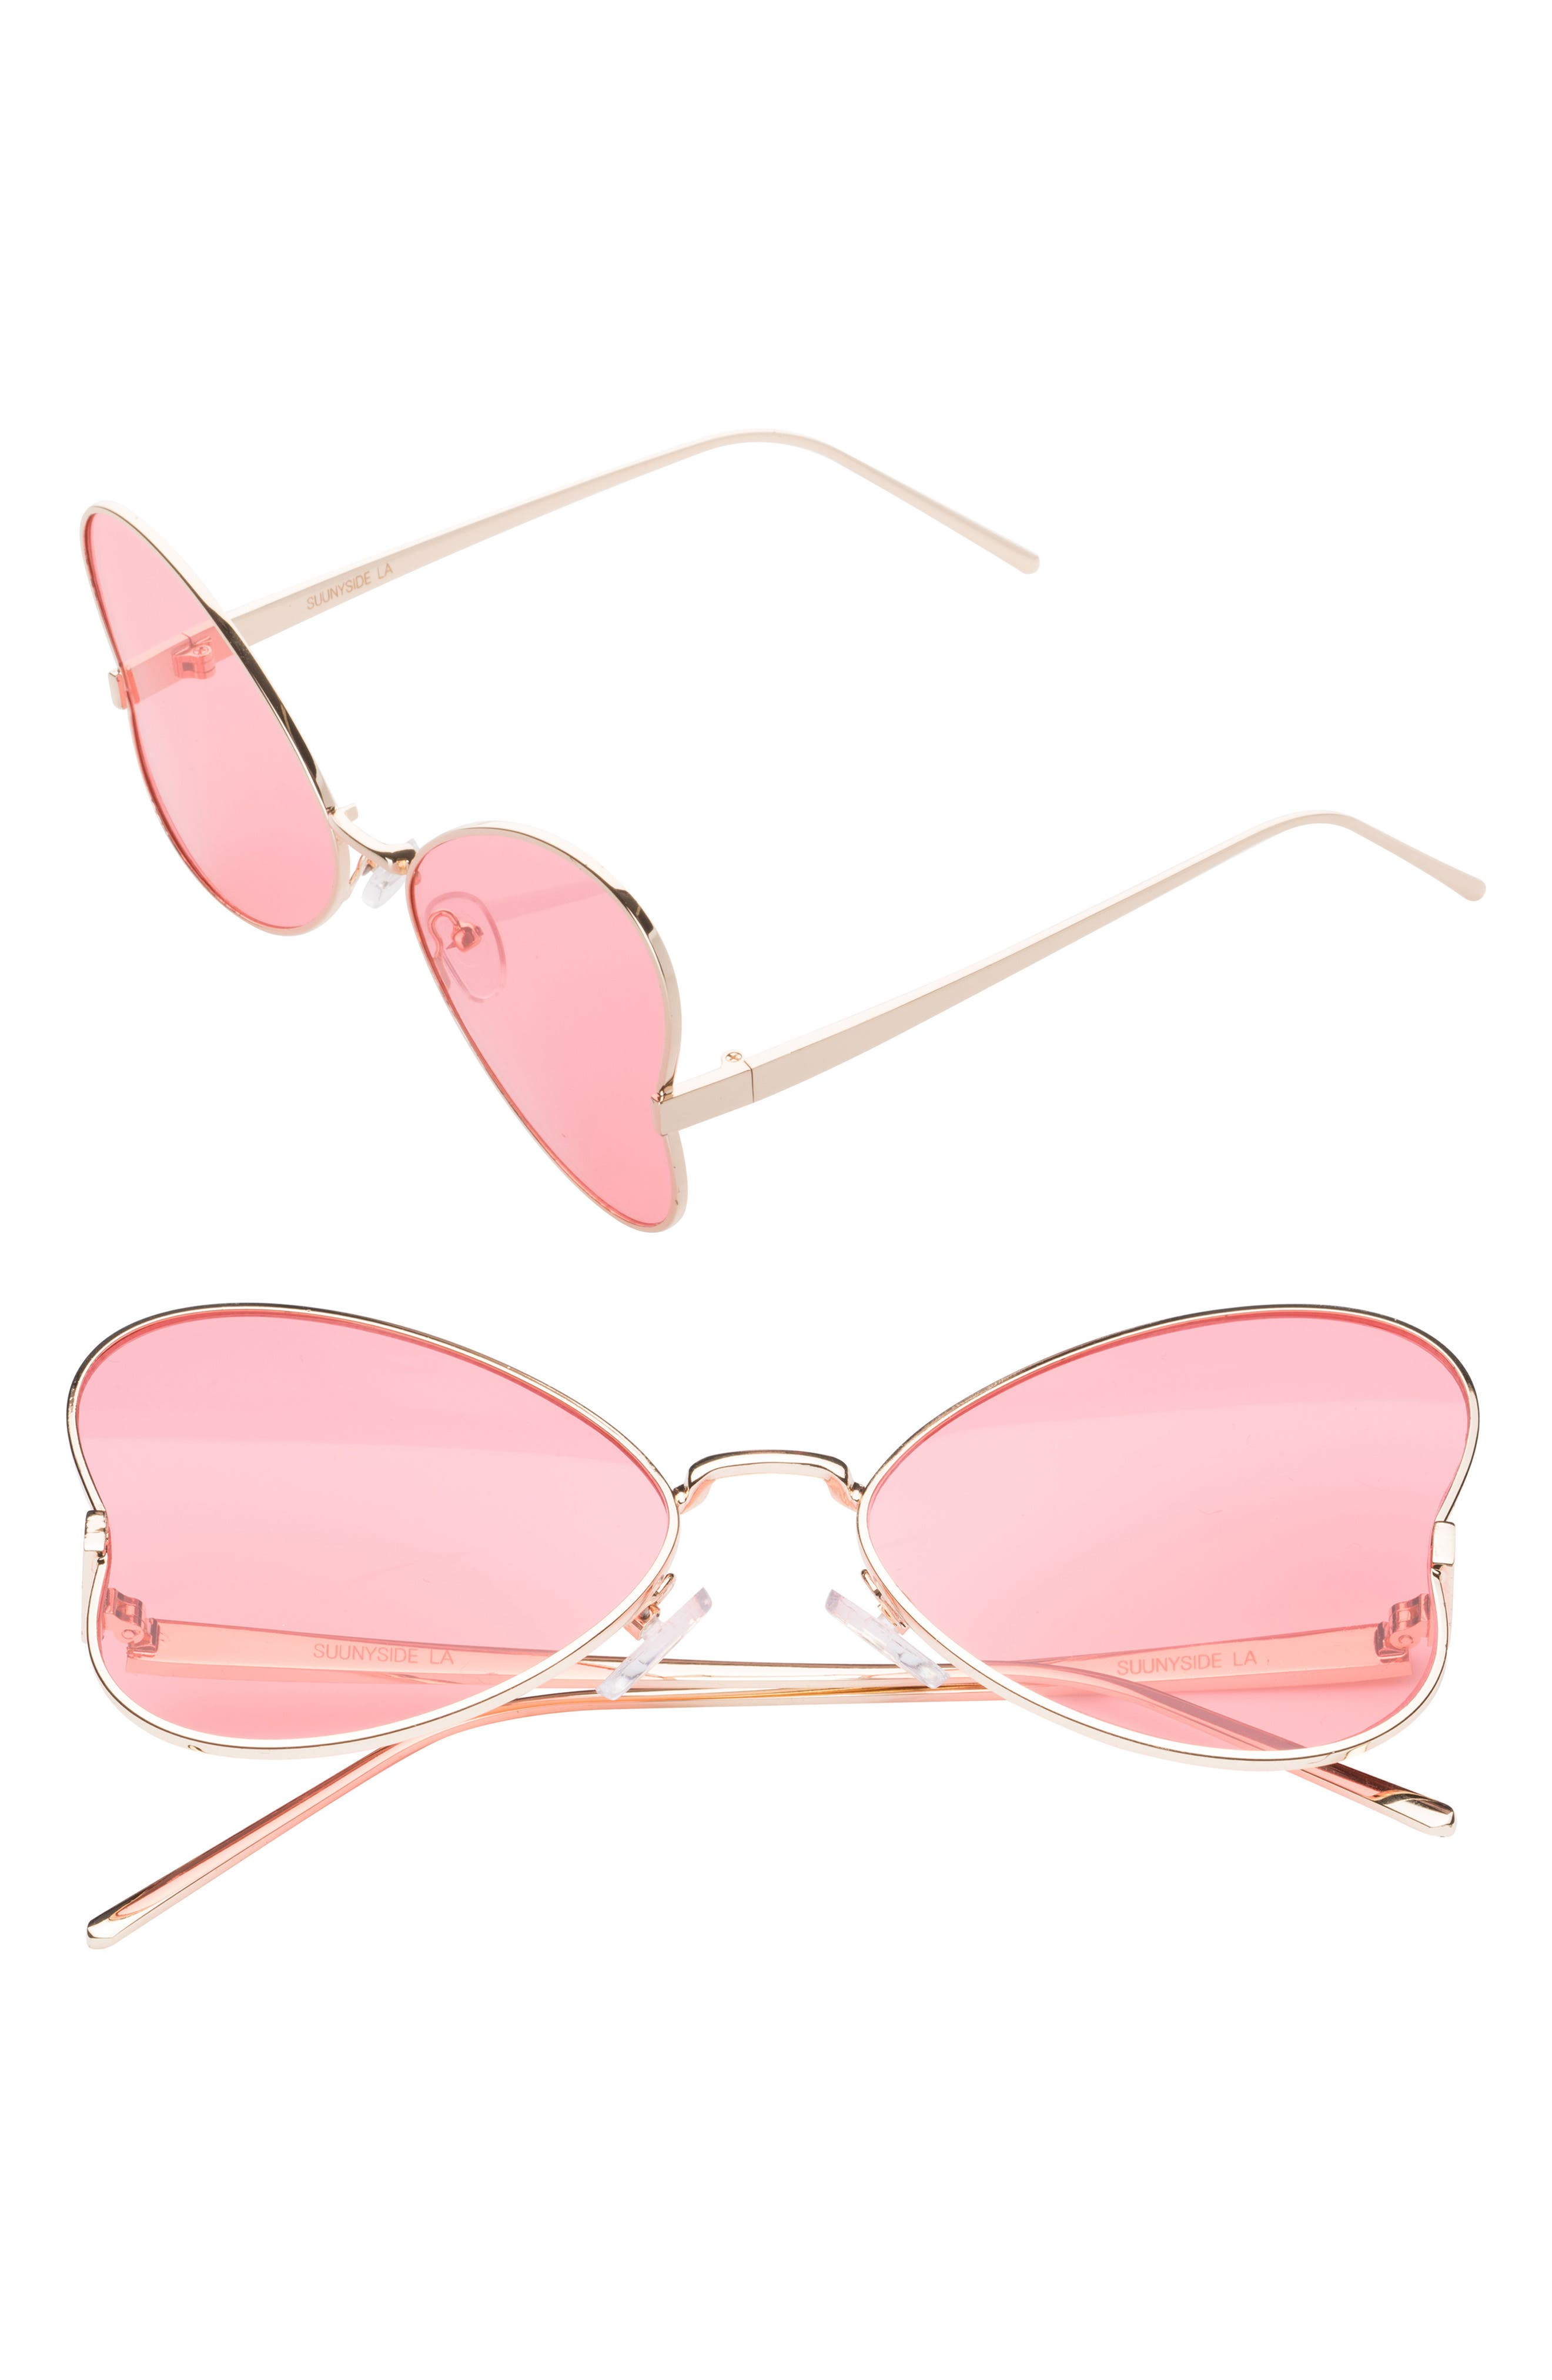 56mm Heart Sunglasses,                         Main,                         color, 650